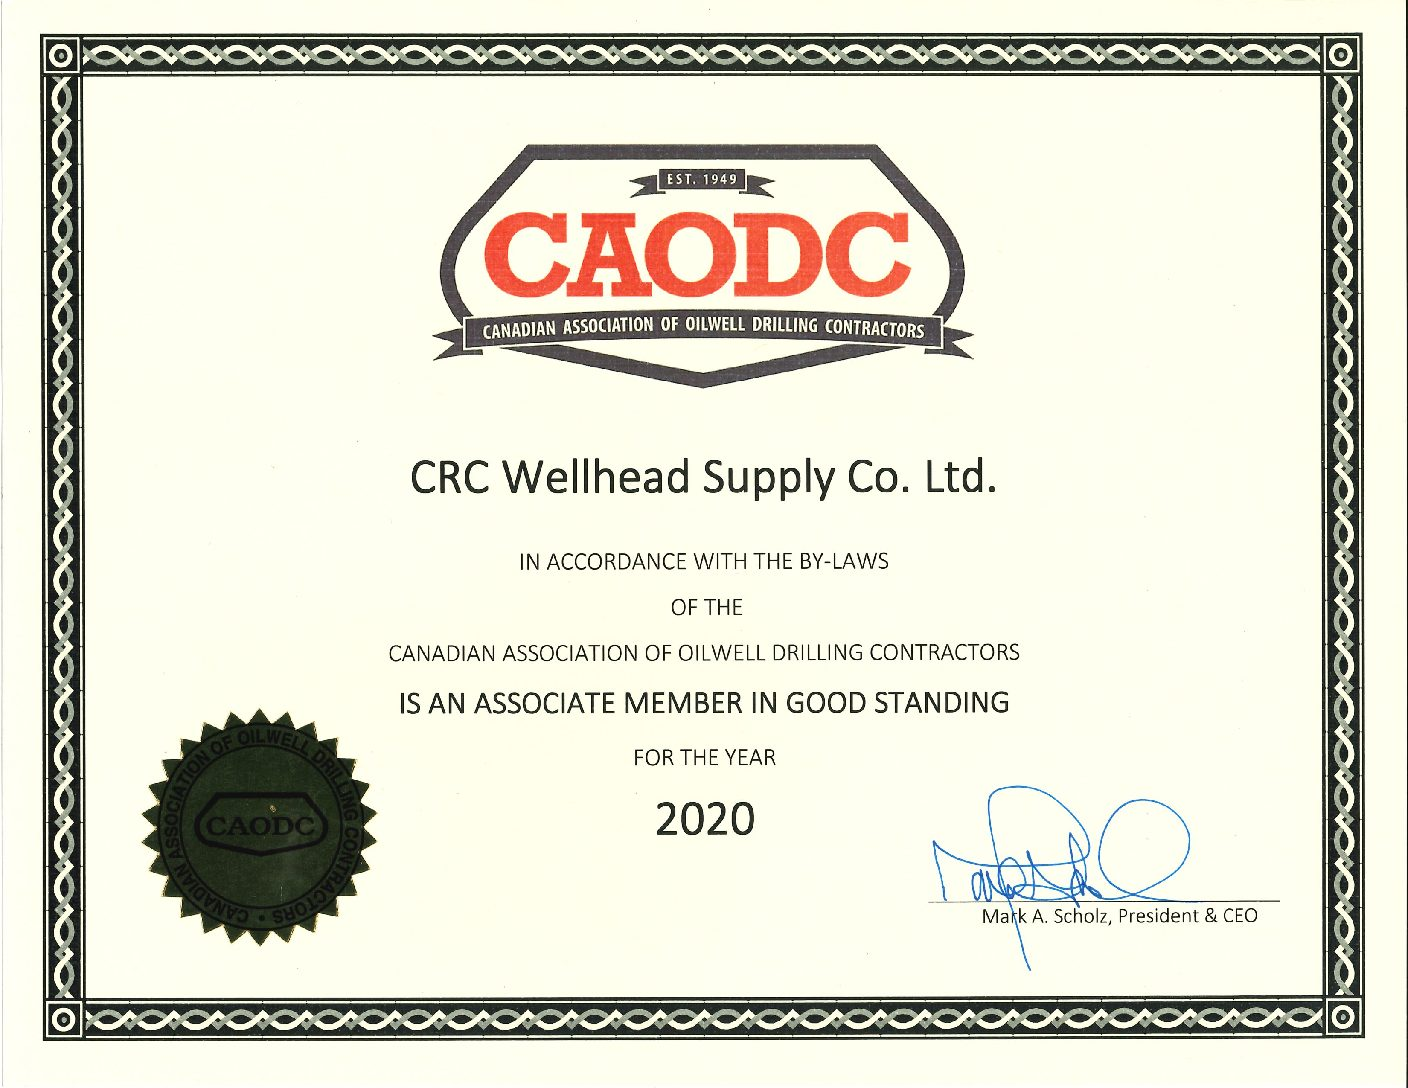 Canadian Association of Oilwell Drilling Contractors certificate crc wellhead